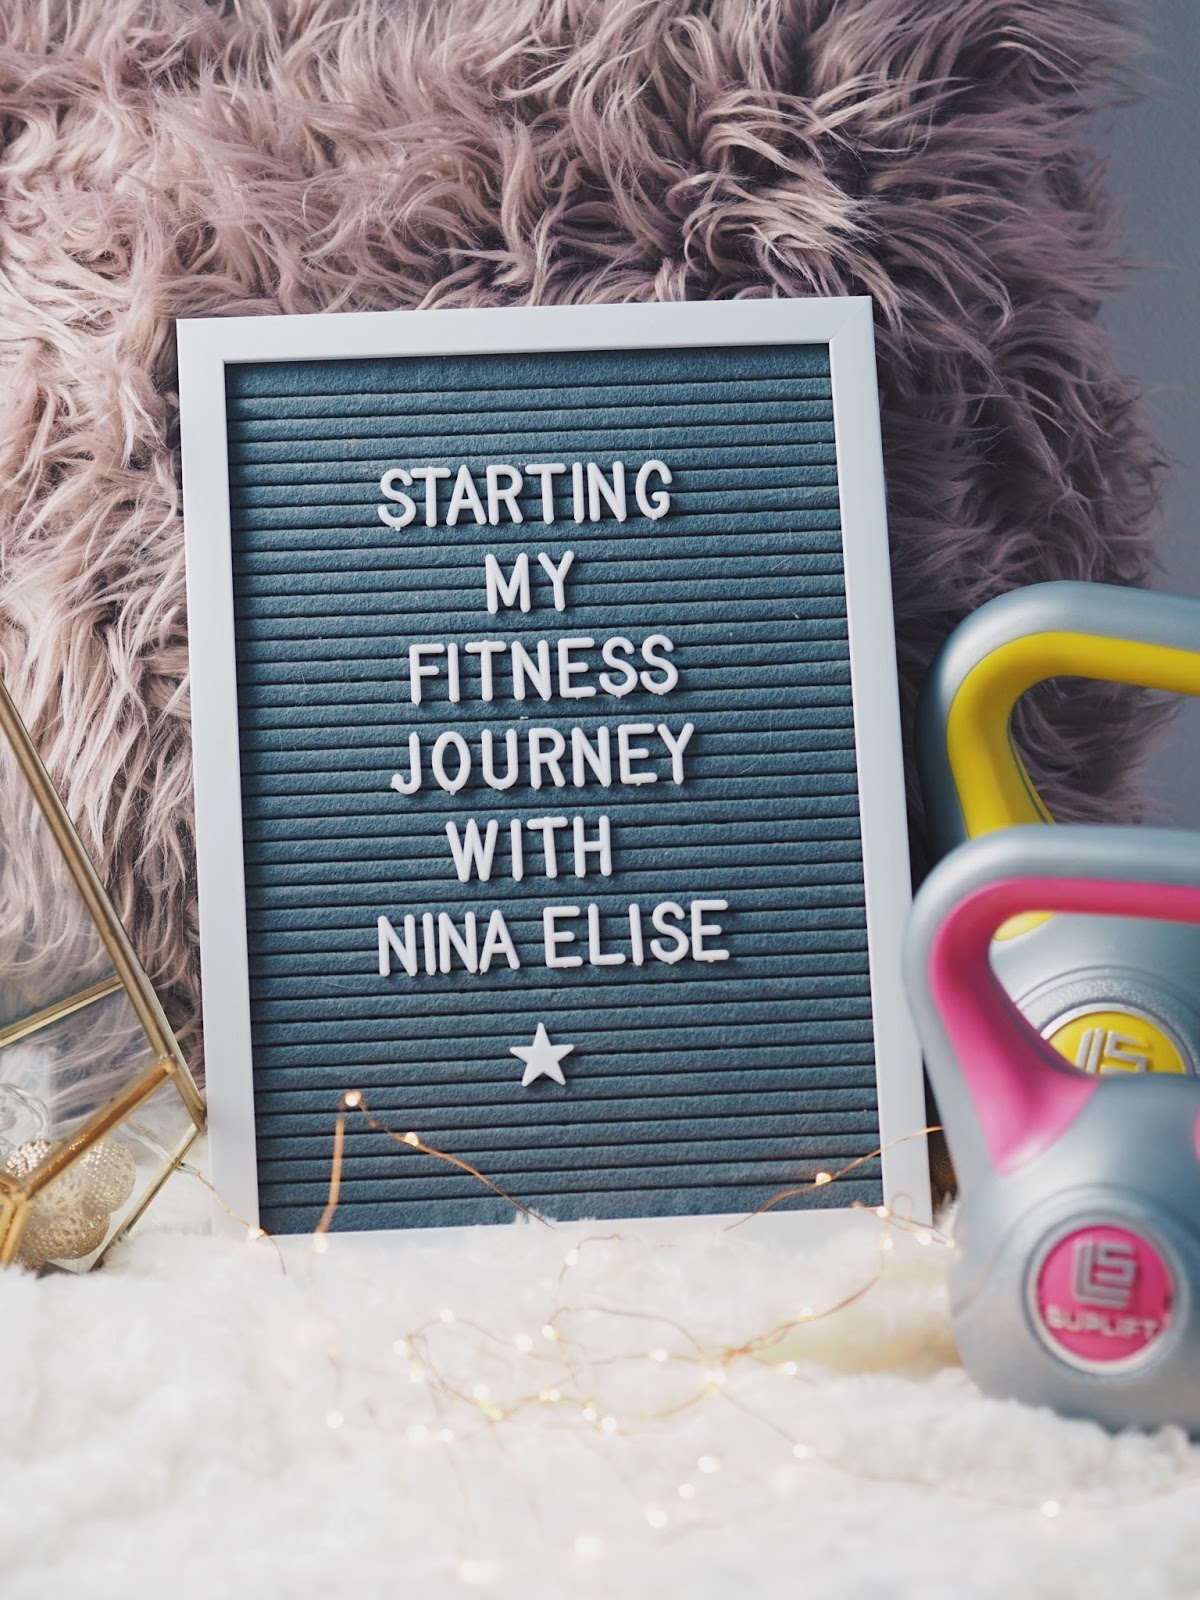 Getting Started On My Fitness Journey With Nina Elise Workouts [AD | Gifted].*